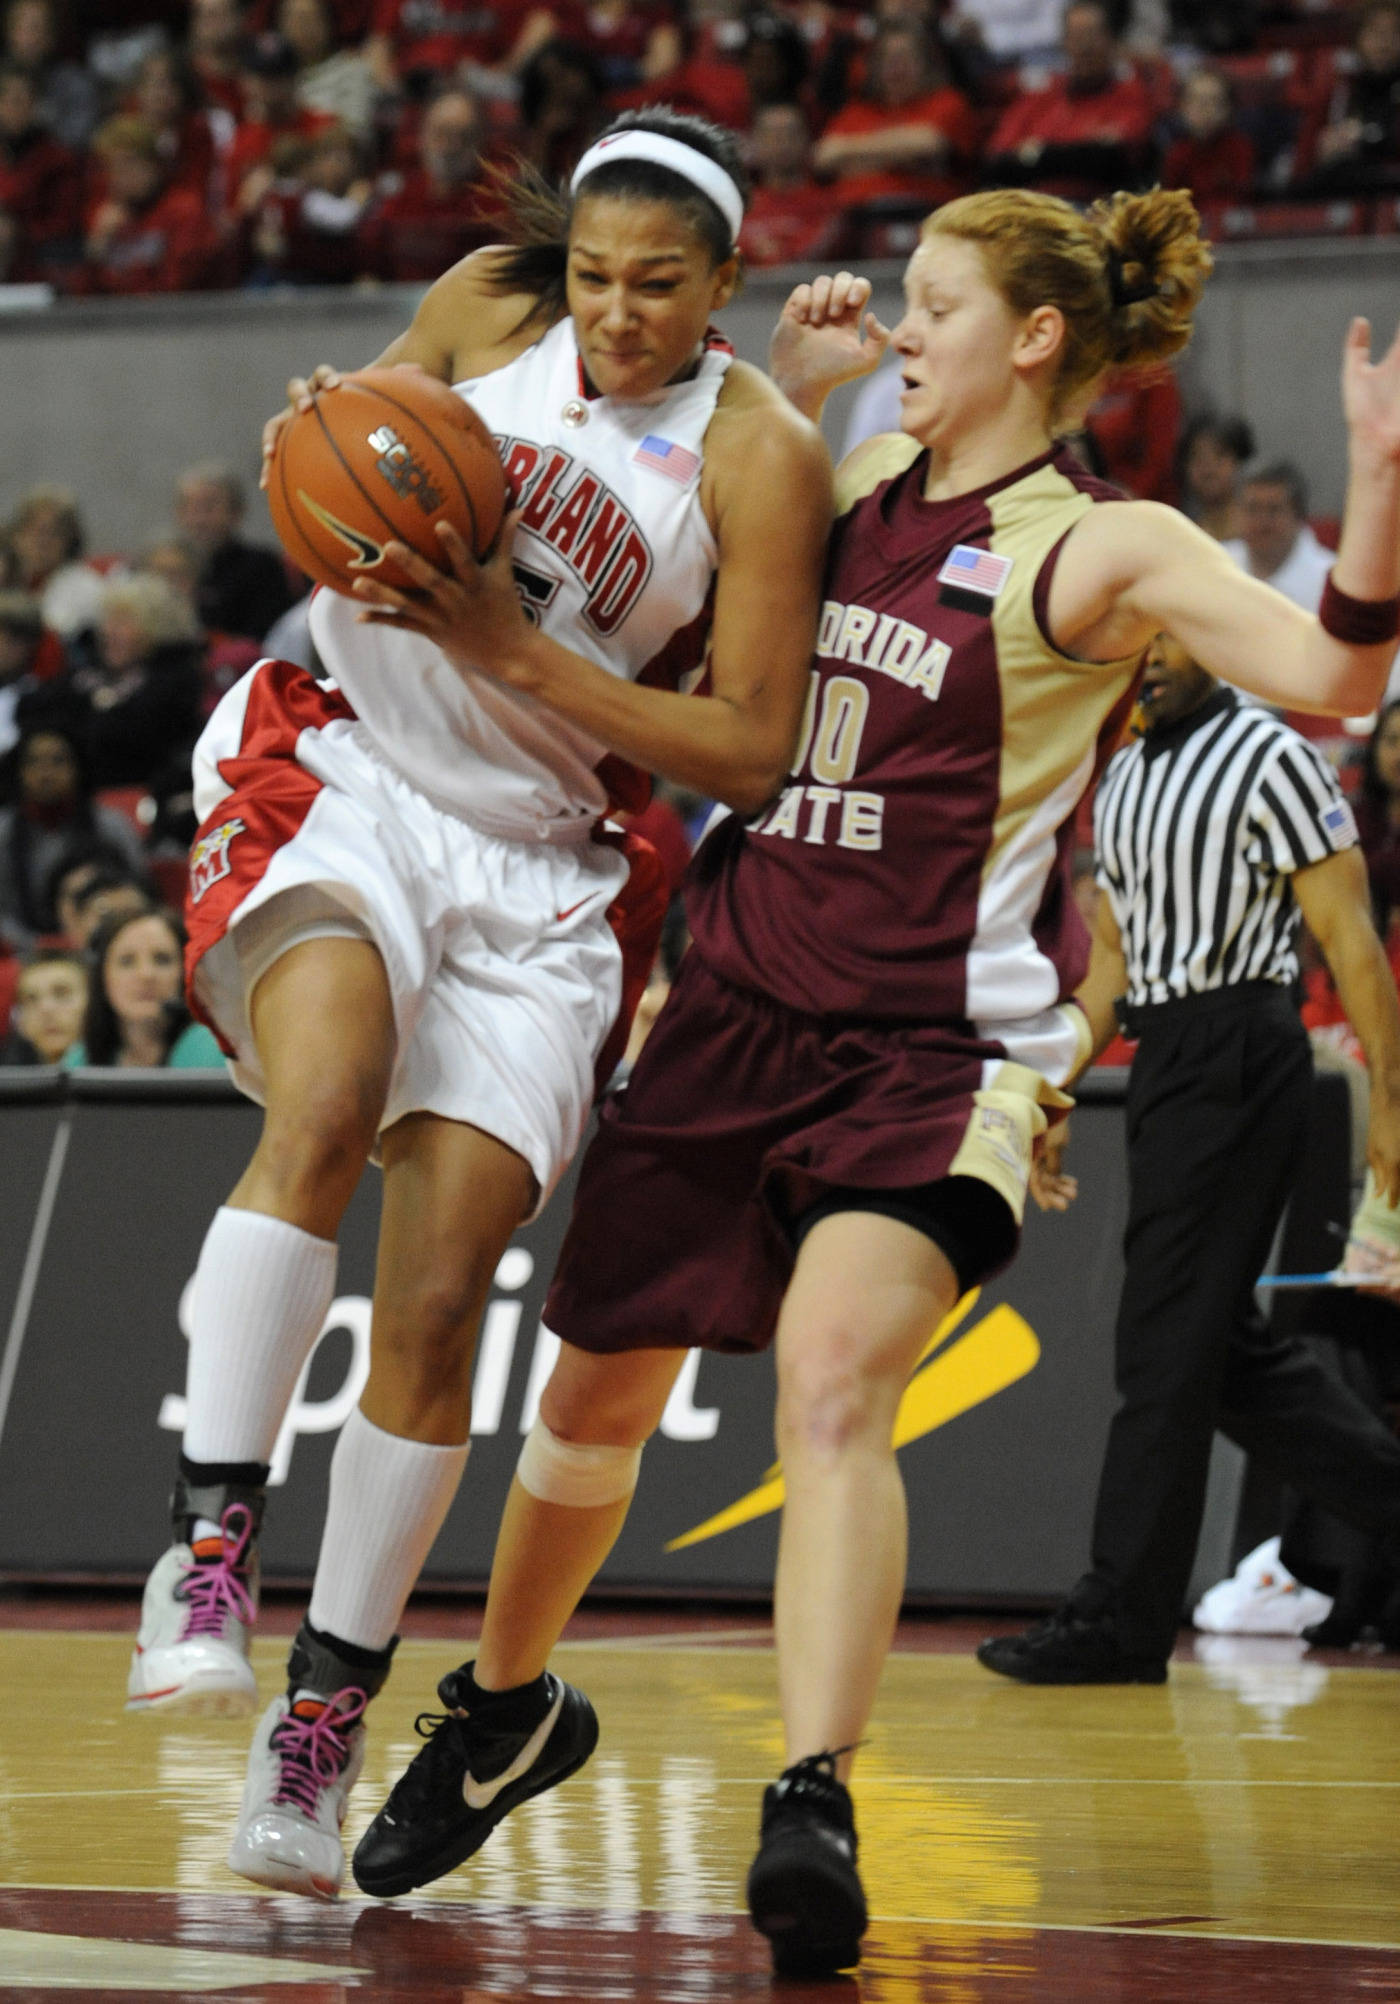 Maryland's Marissa Coleman, left, drives to the basket as Florida State's Mara Freshour defends during the first half of a college basketball game Sunday Feb. 24, 2008, in College Park, Md.(AP Photo/Gail Burton)